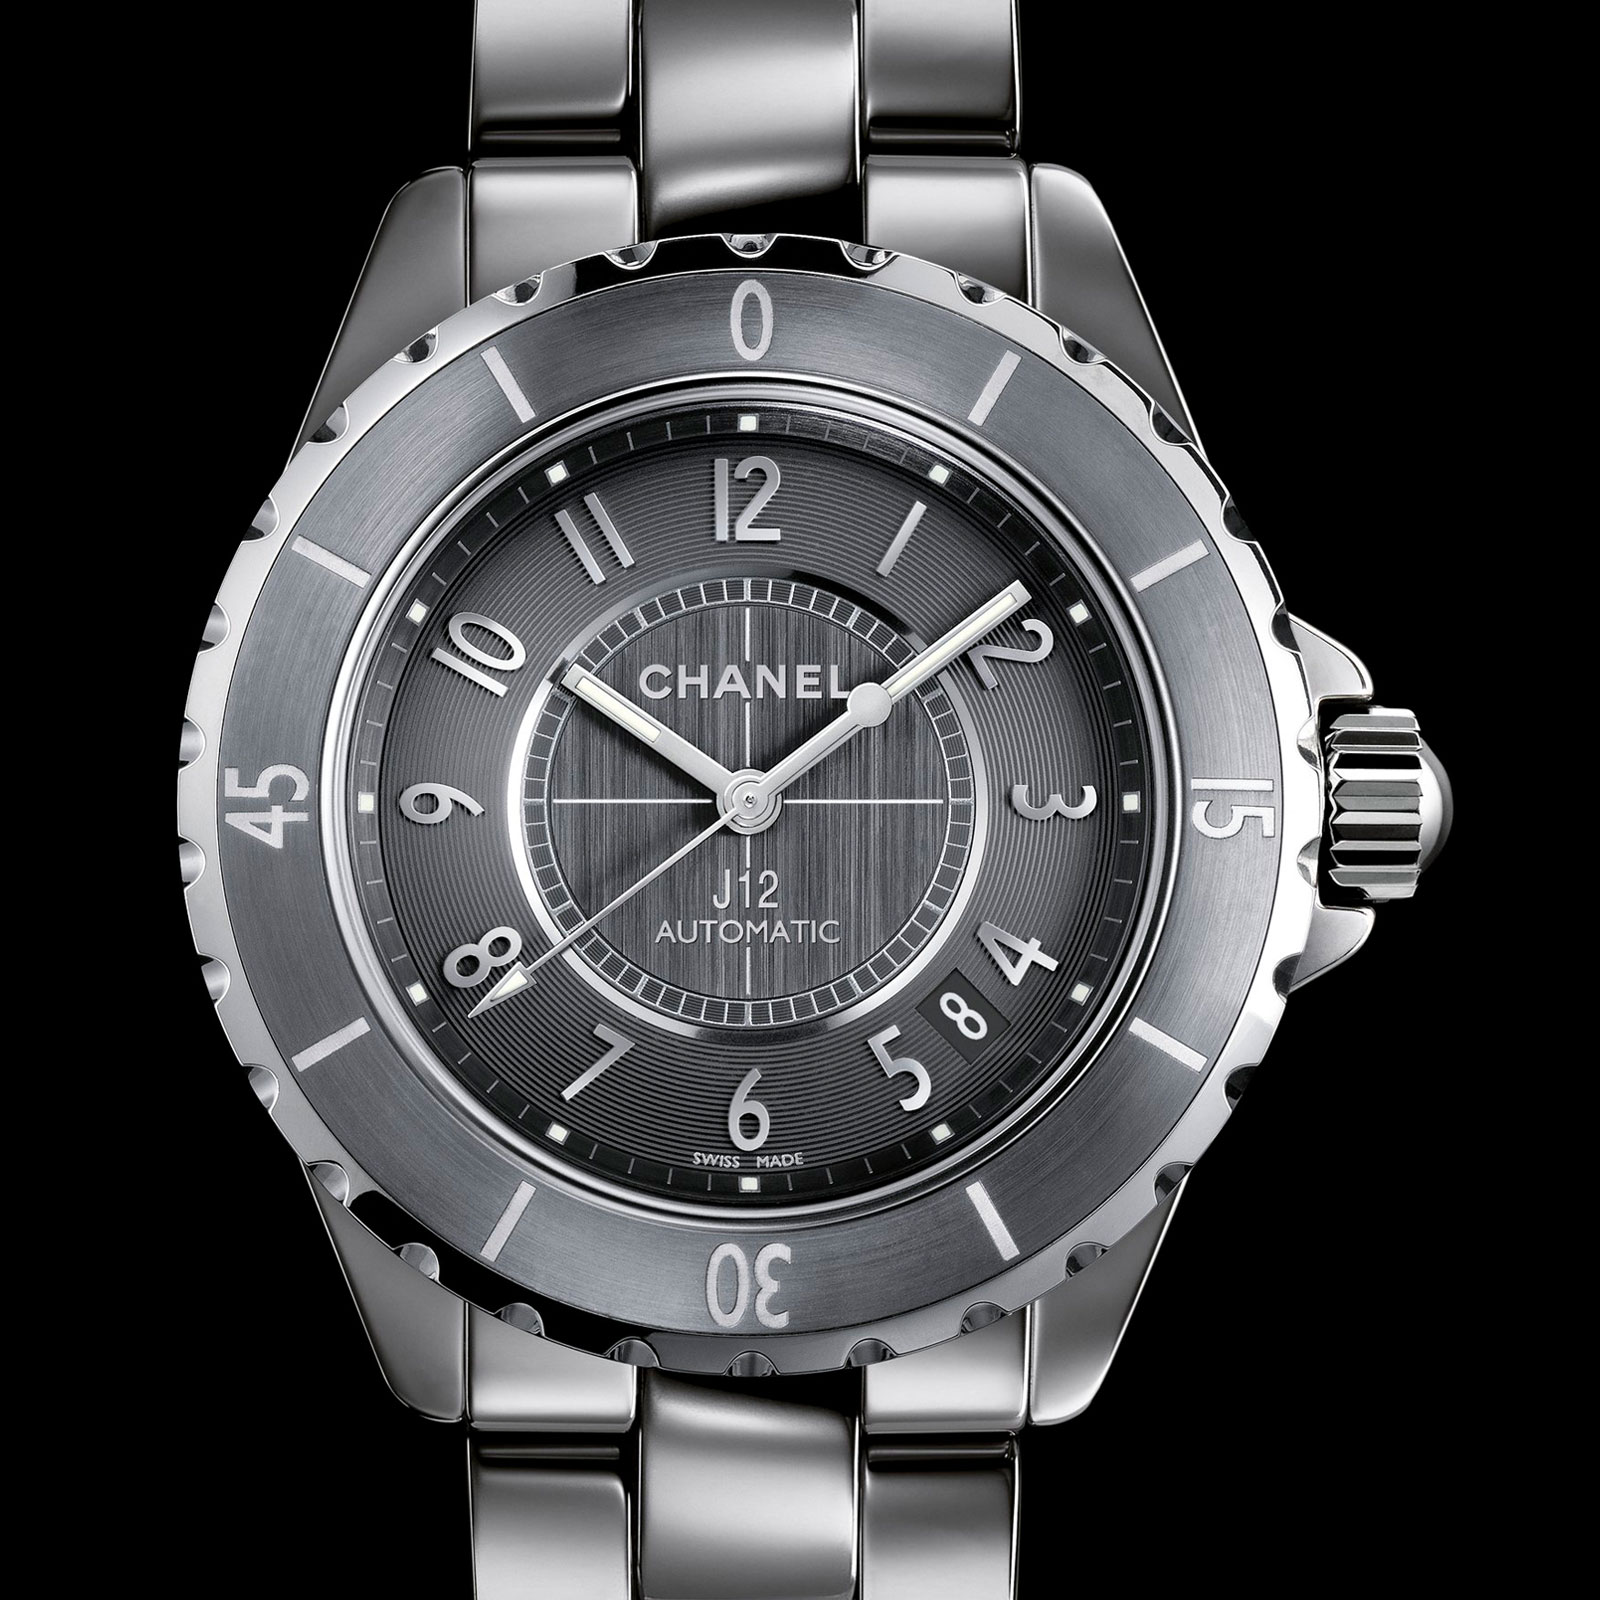 Chanel J12 Chromatic Titanium Ceramic Watch